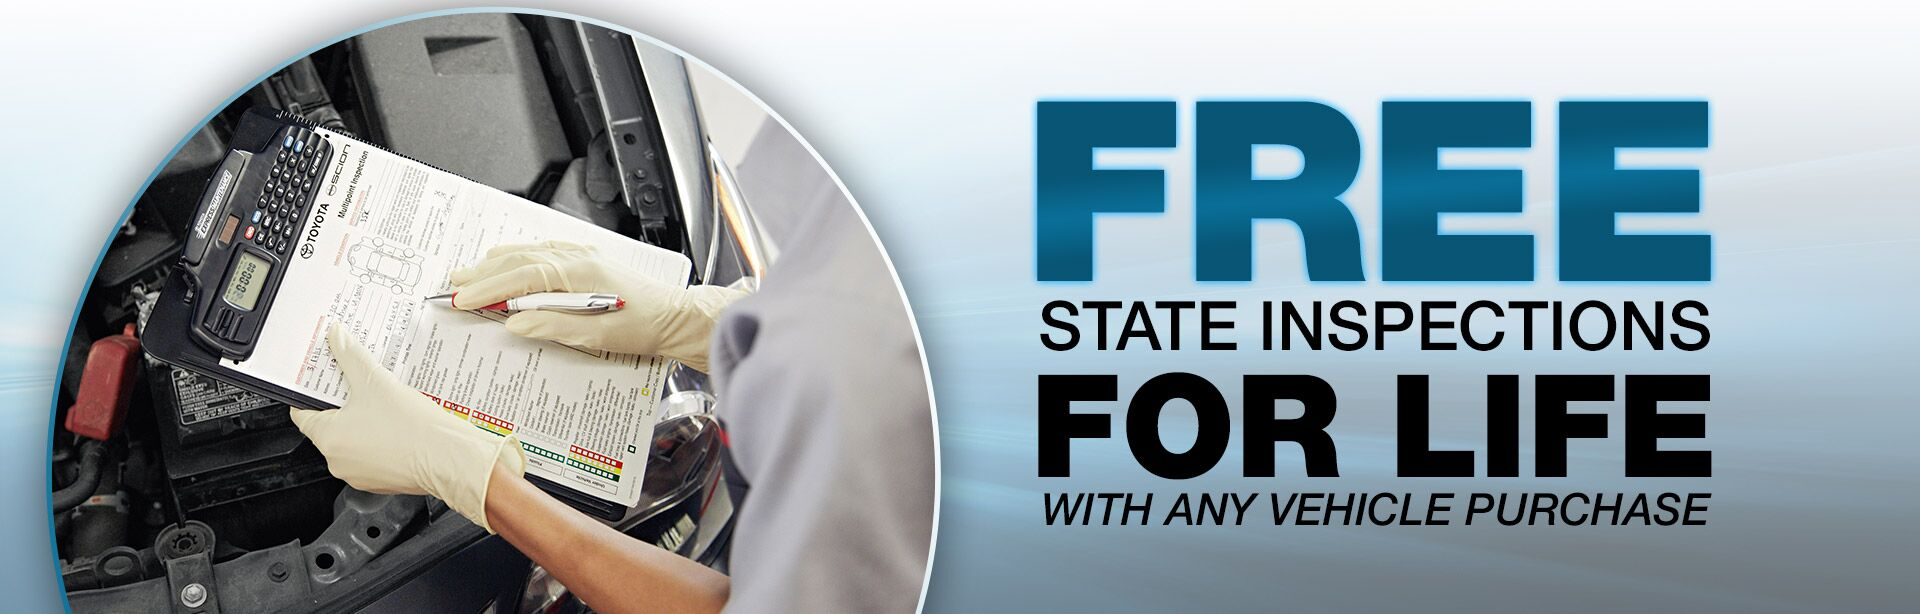 Free State Inspections